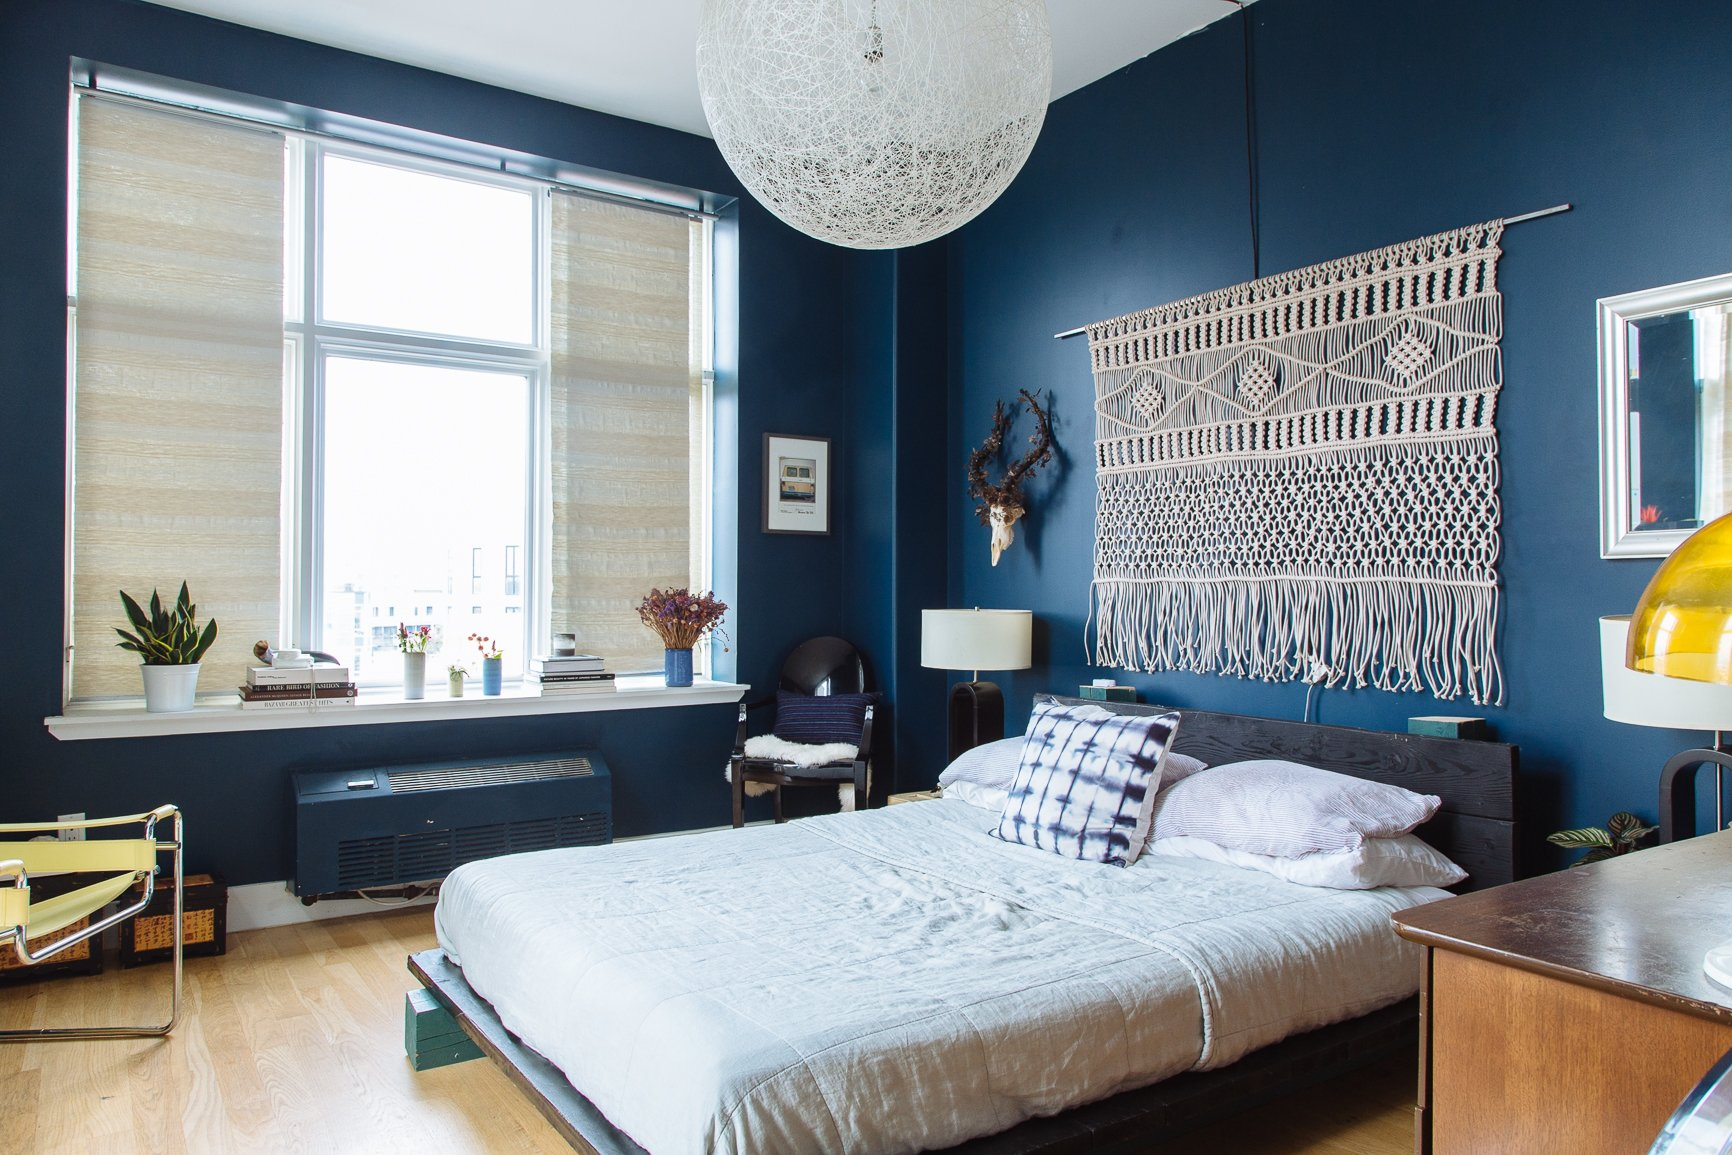 Find The Right Pendant Light For Your Style And Budget Apartment Therapy